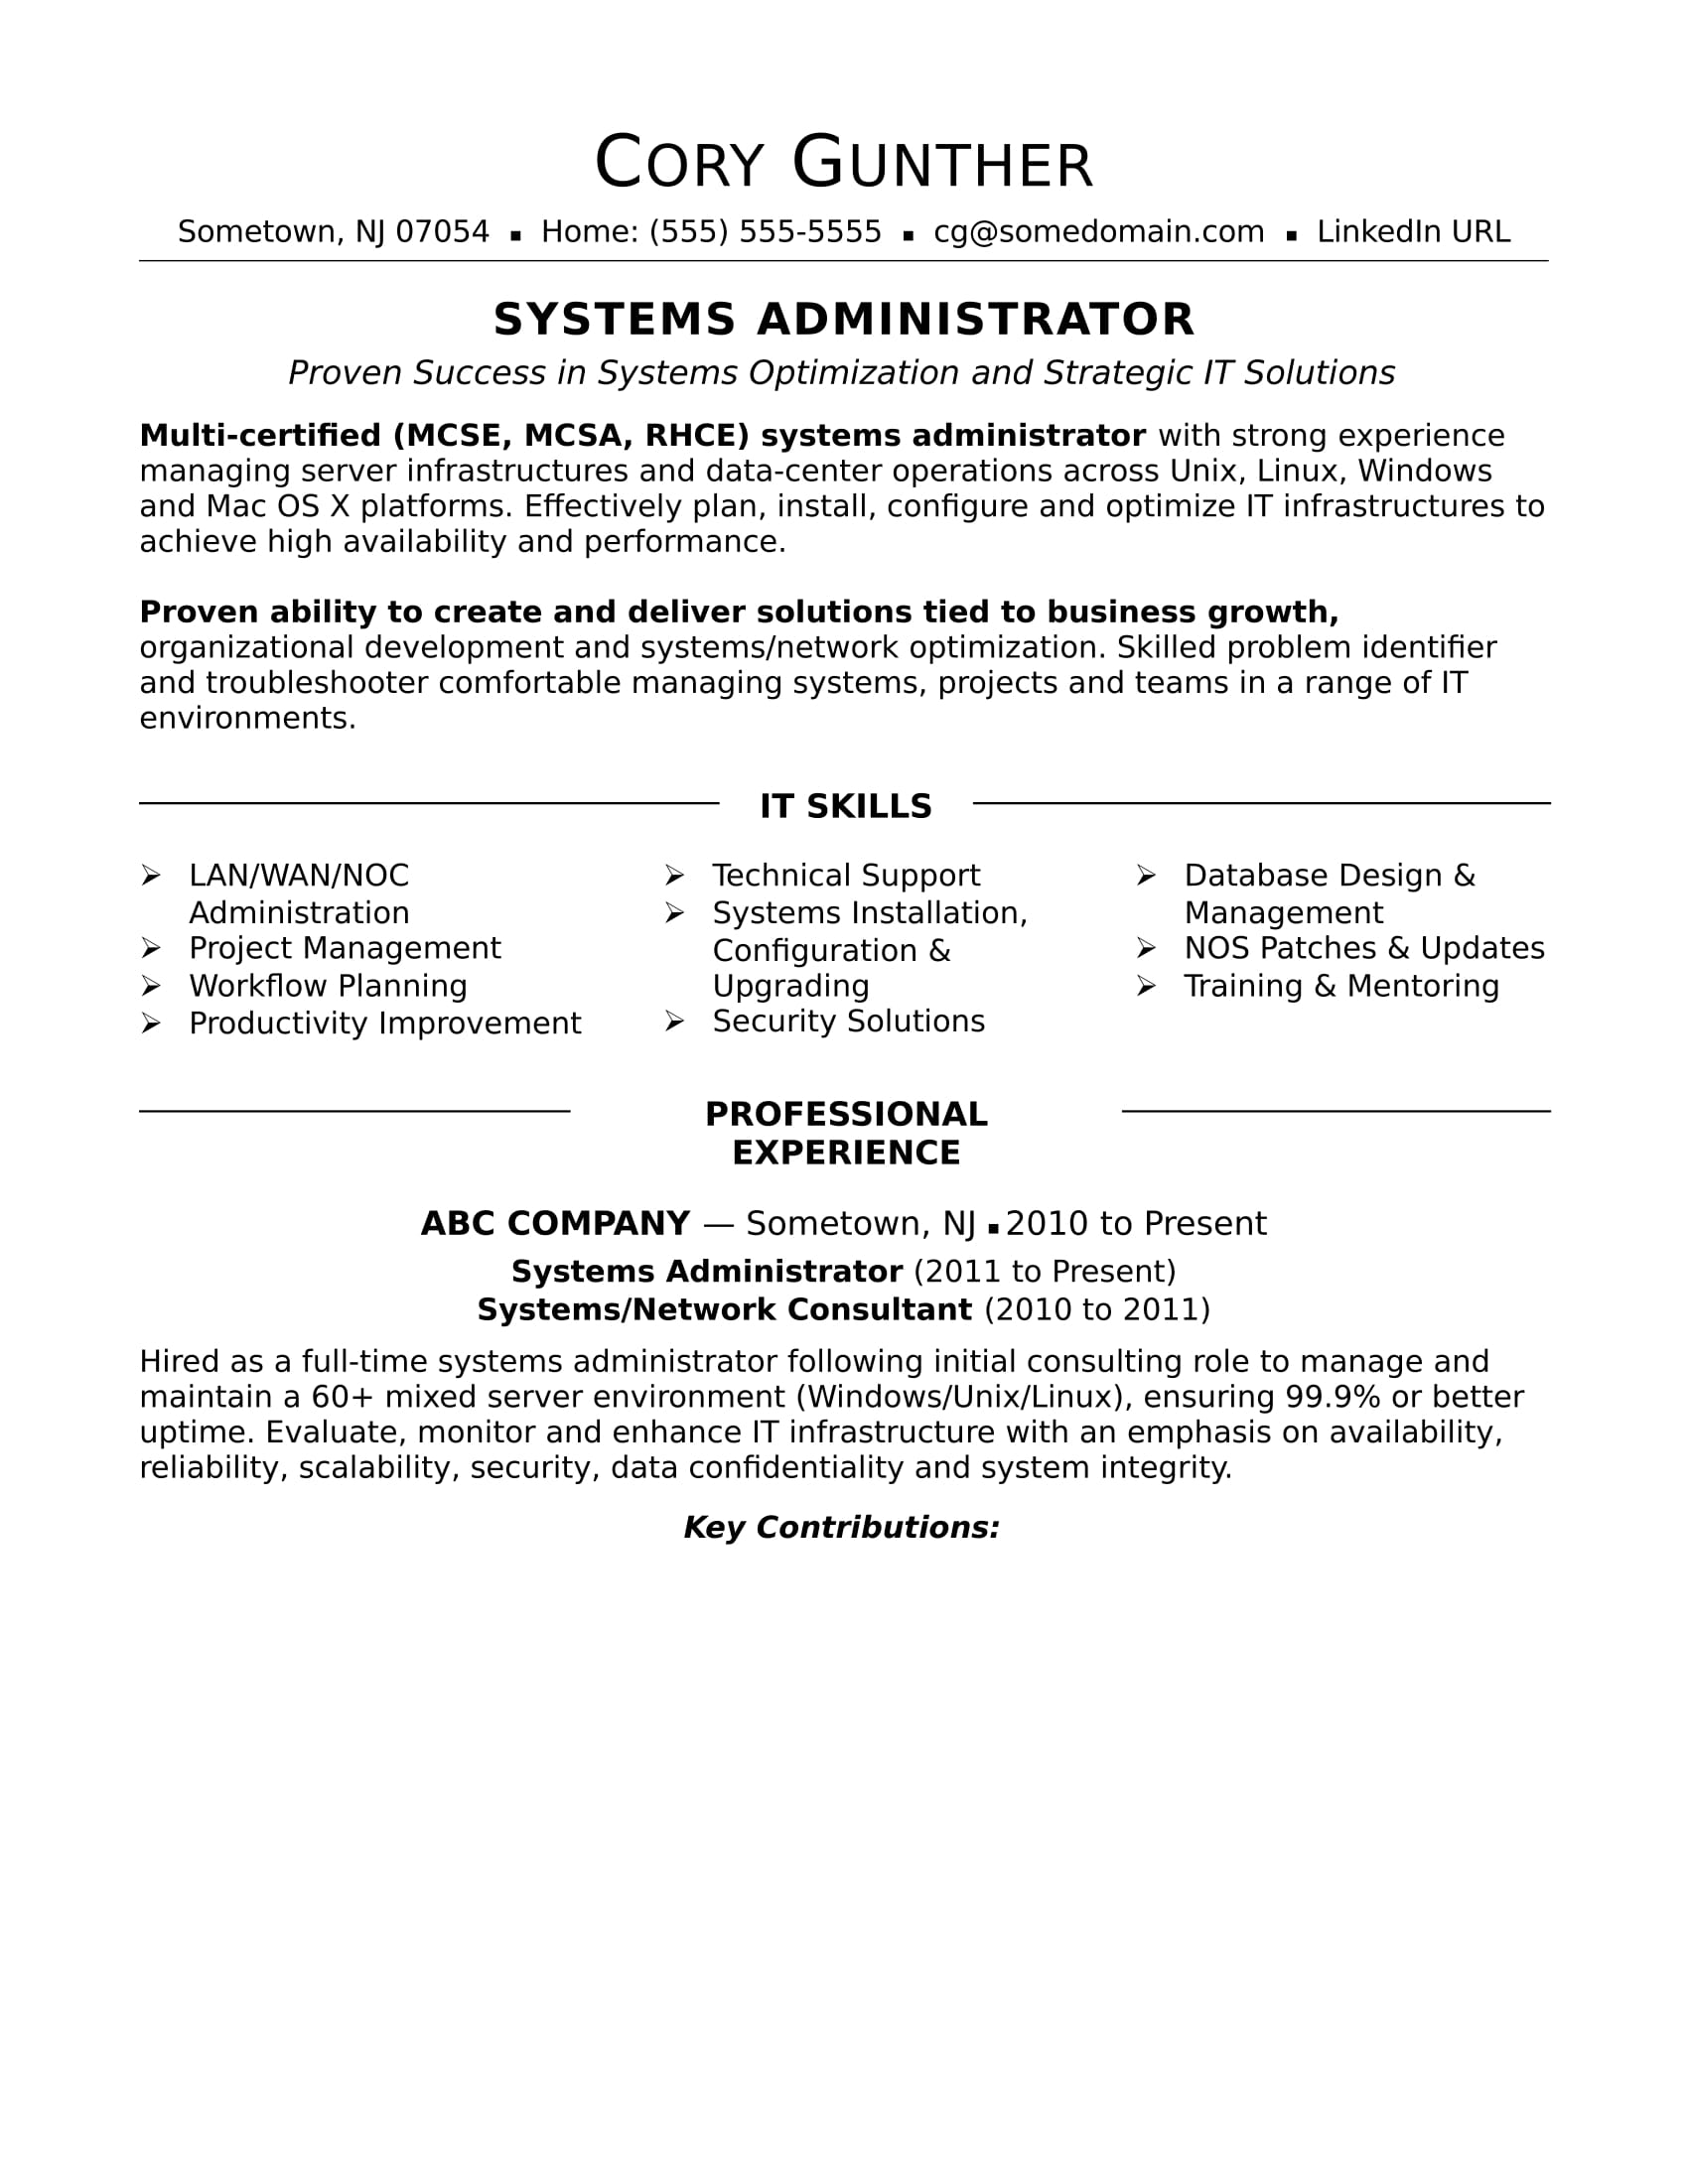 Benefits Manager Resume Sample Resume For An Experienced Systems Administrator